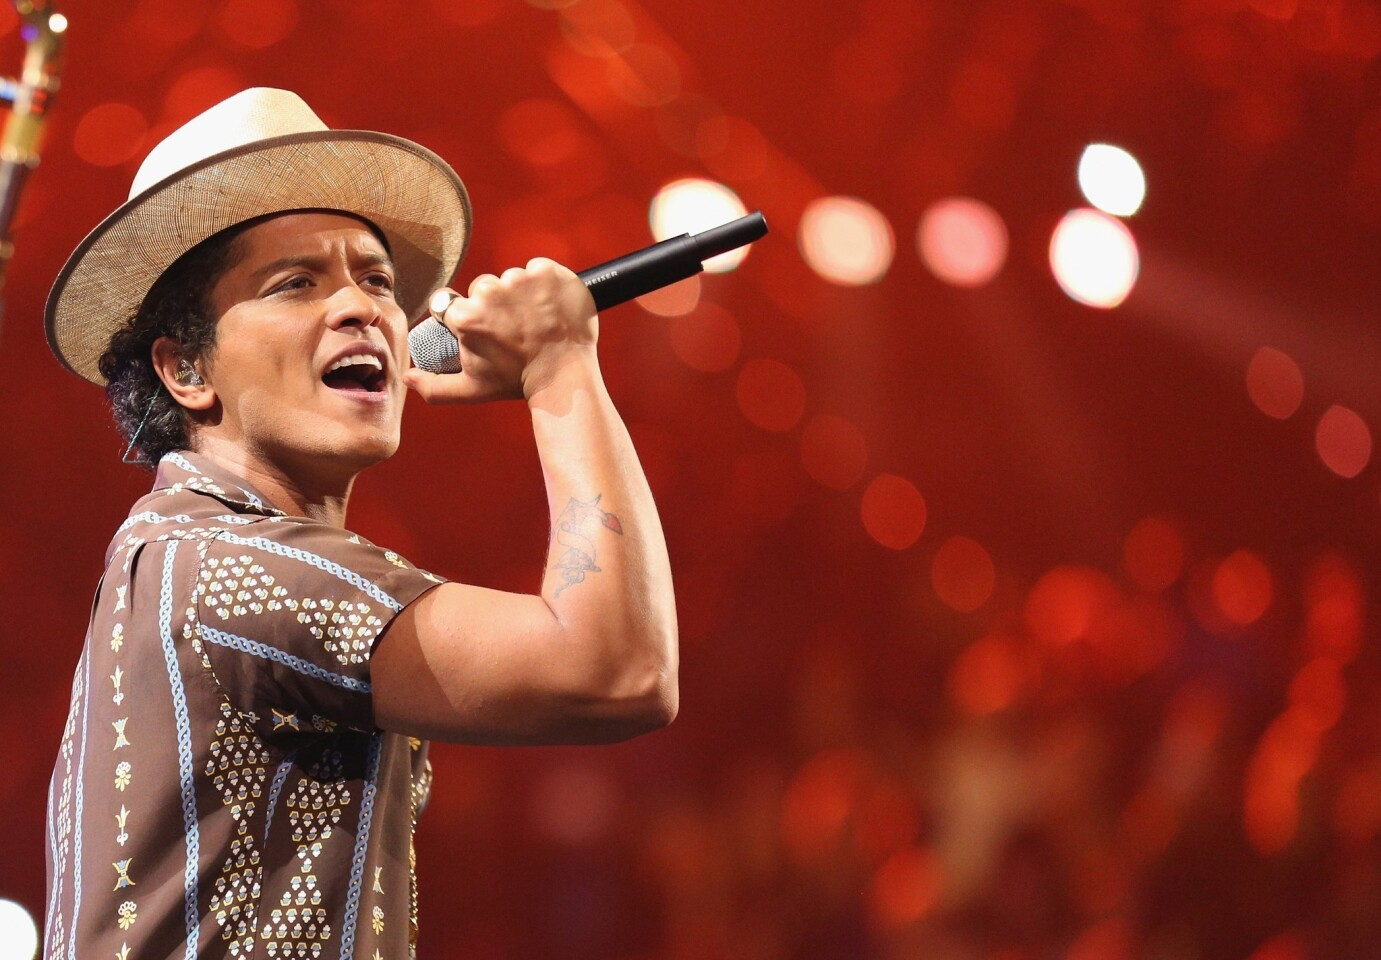 Singer Bruno Mars, shown performing during the iHeartRadio Music Festival at the MGM Grand in Las Vegas in September, is among the 2014 Headwear Hall of Fame inductees.